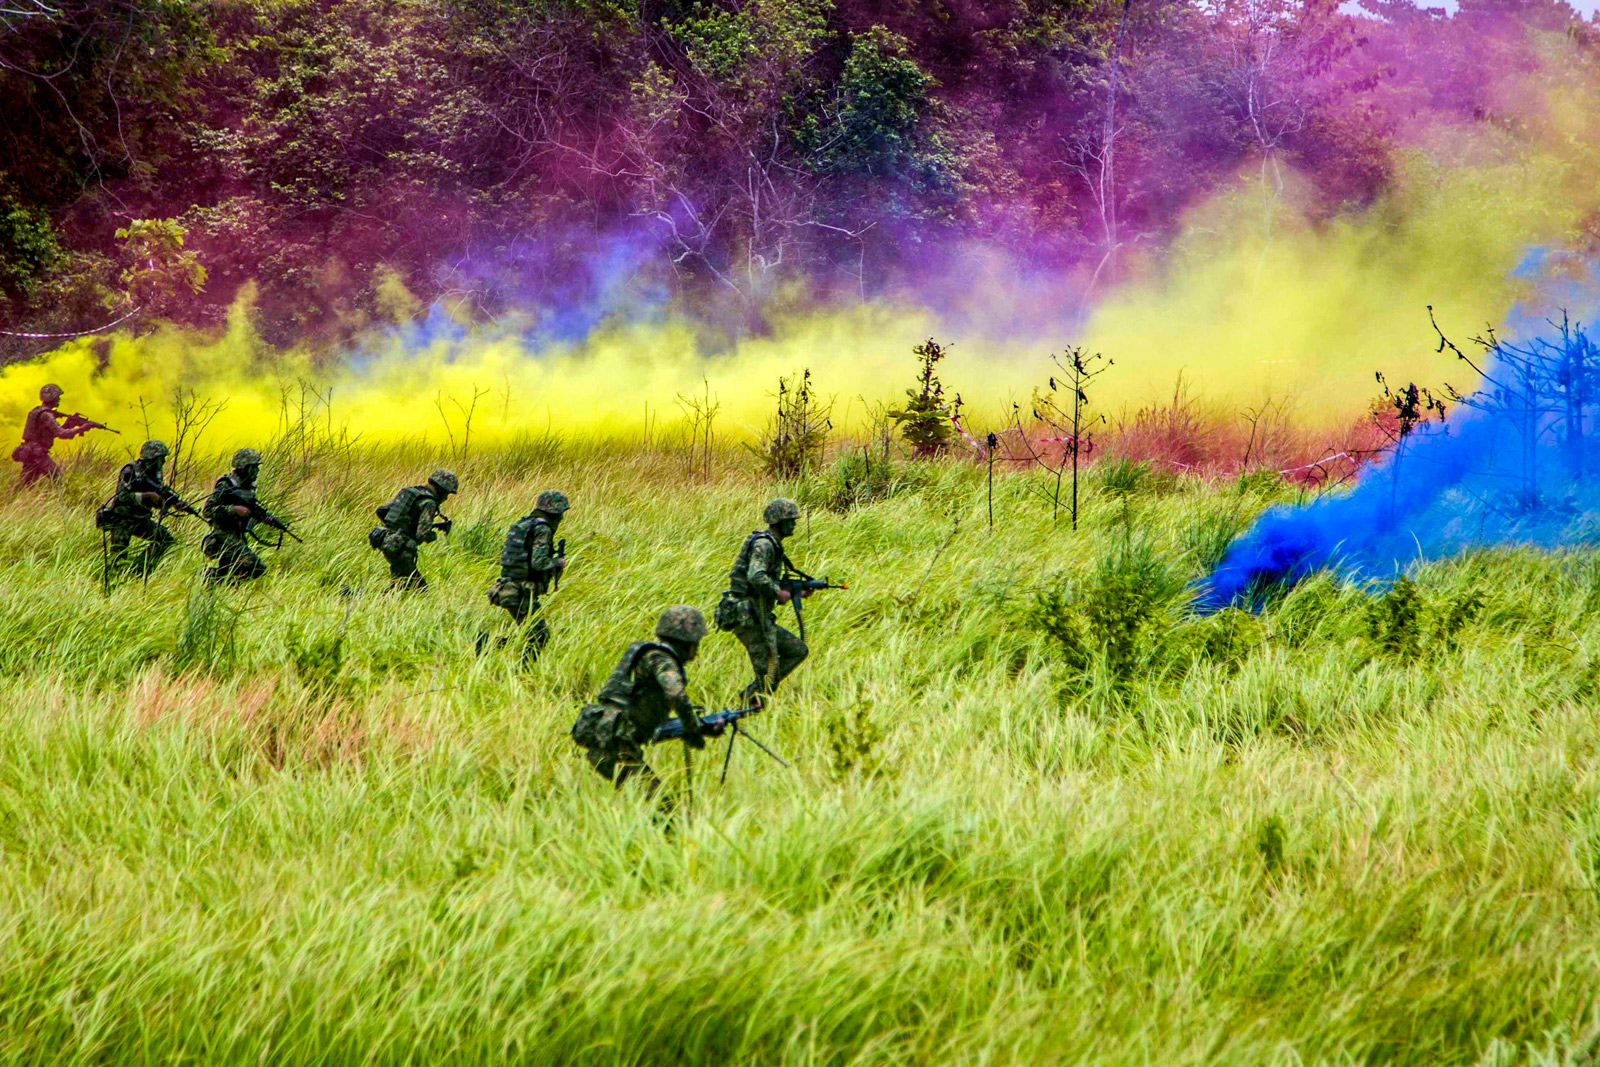 U.S. Marines and Malaysian troops use smoke to obscure their movements during an exercise in Tanduo Beach, Malaysia, Aug. 17, 2018, as part of Cooperation Afloat Readiness and Training 2018. // Department of Defense